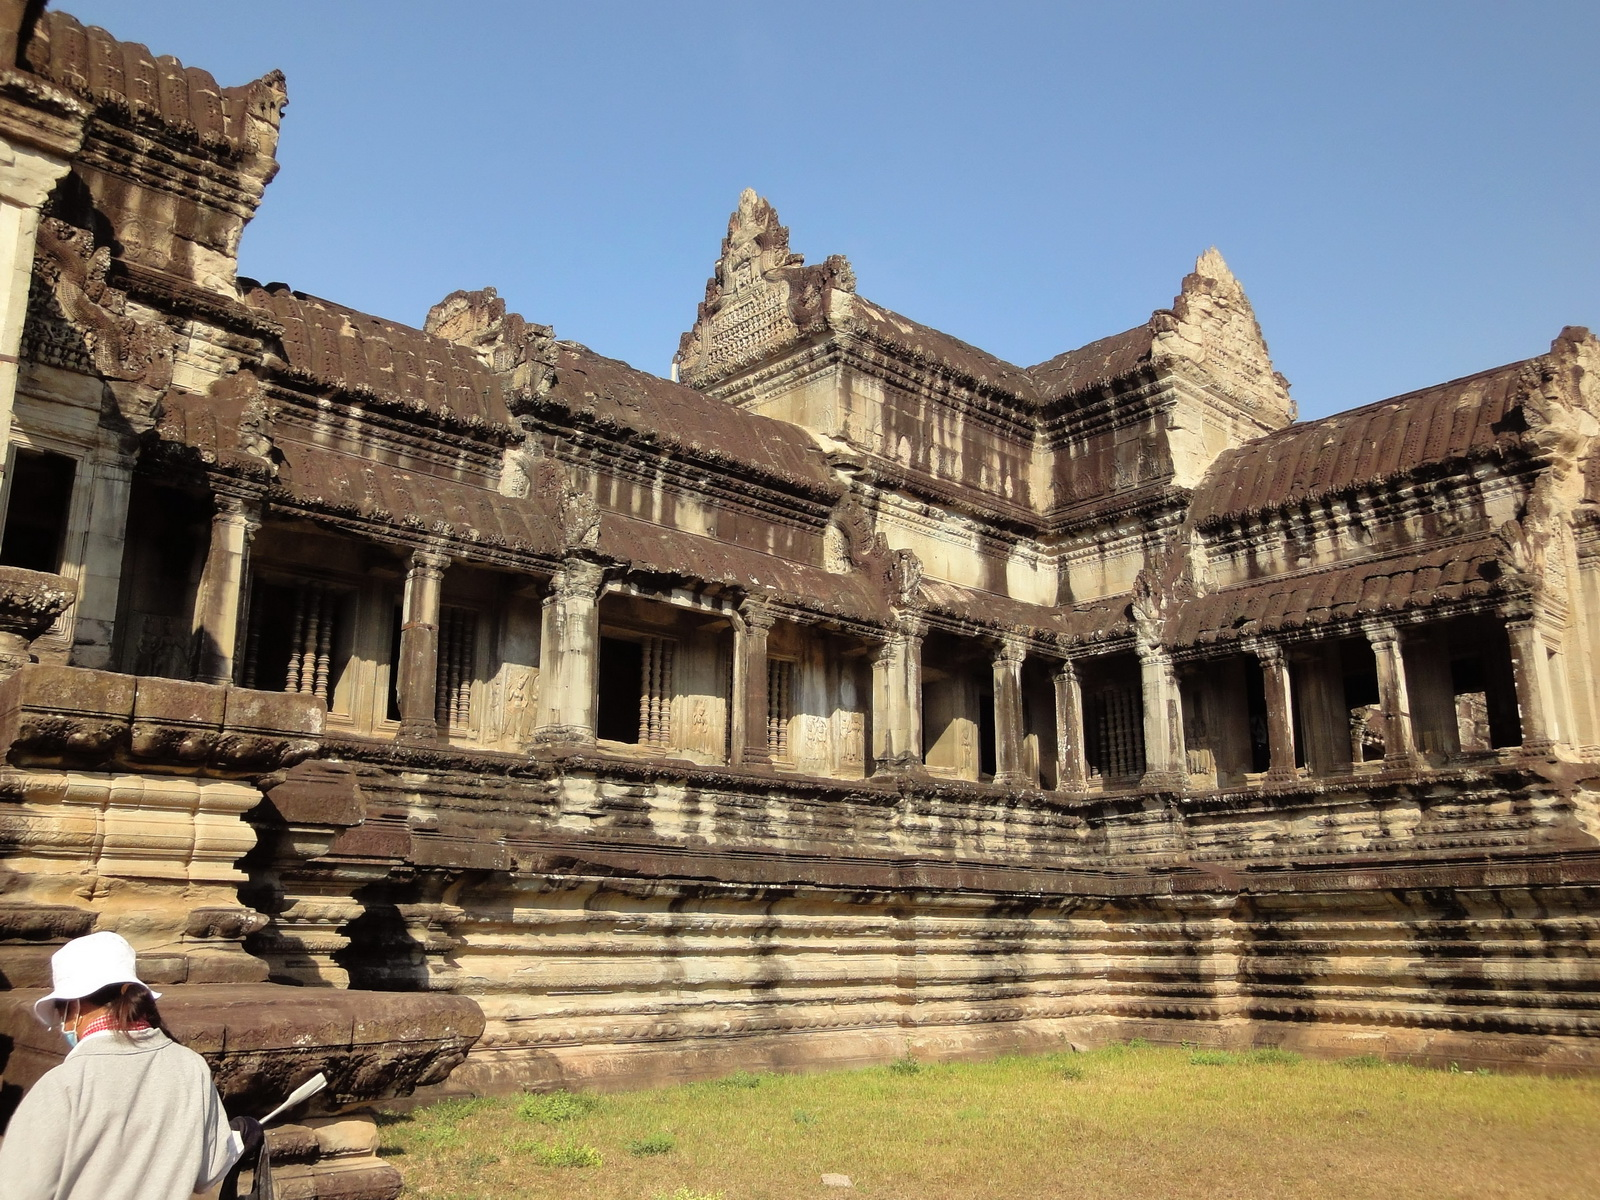 Angkor Wat Khmer architecture eastern gallery entrance 04